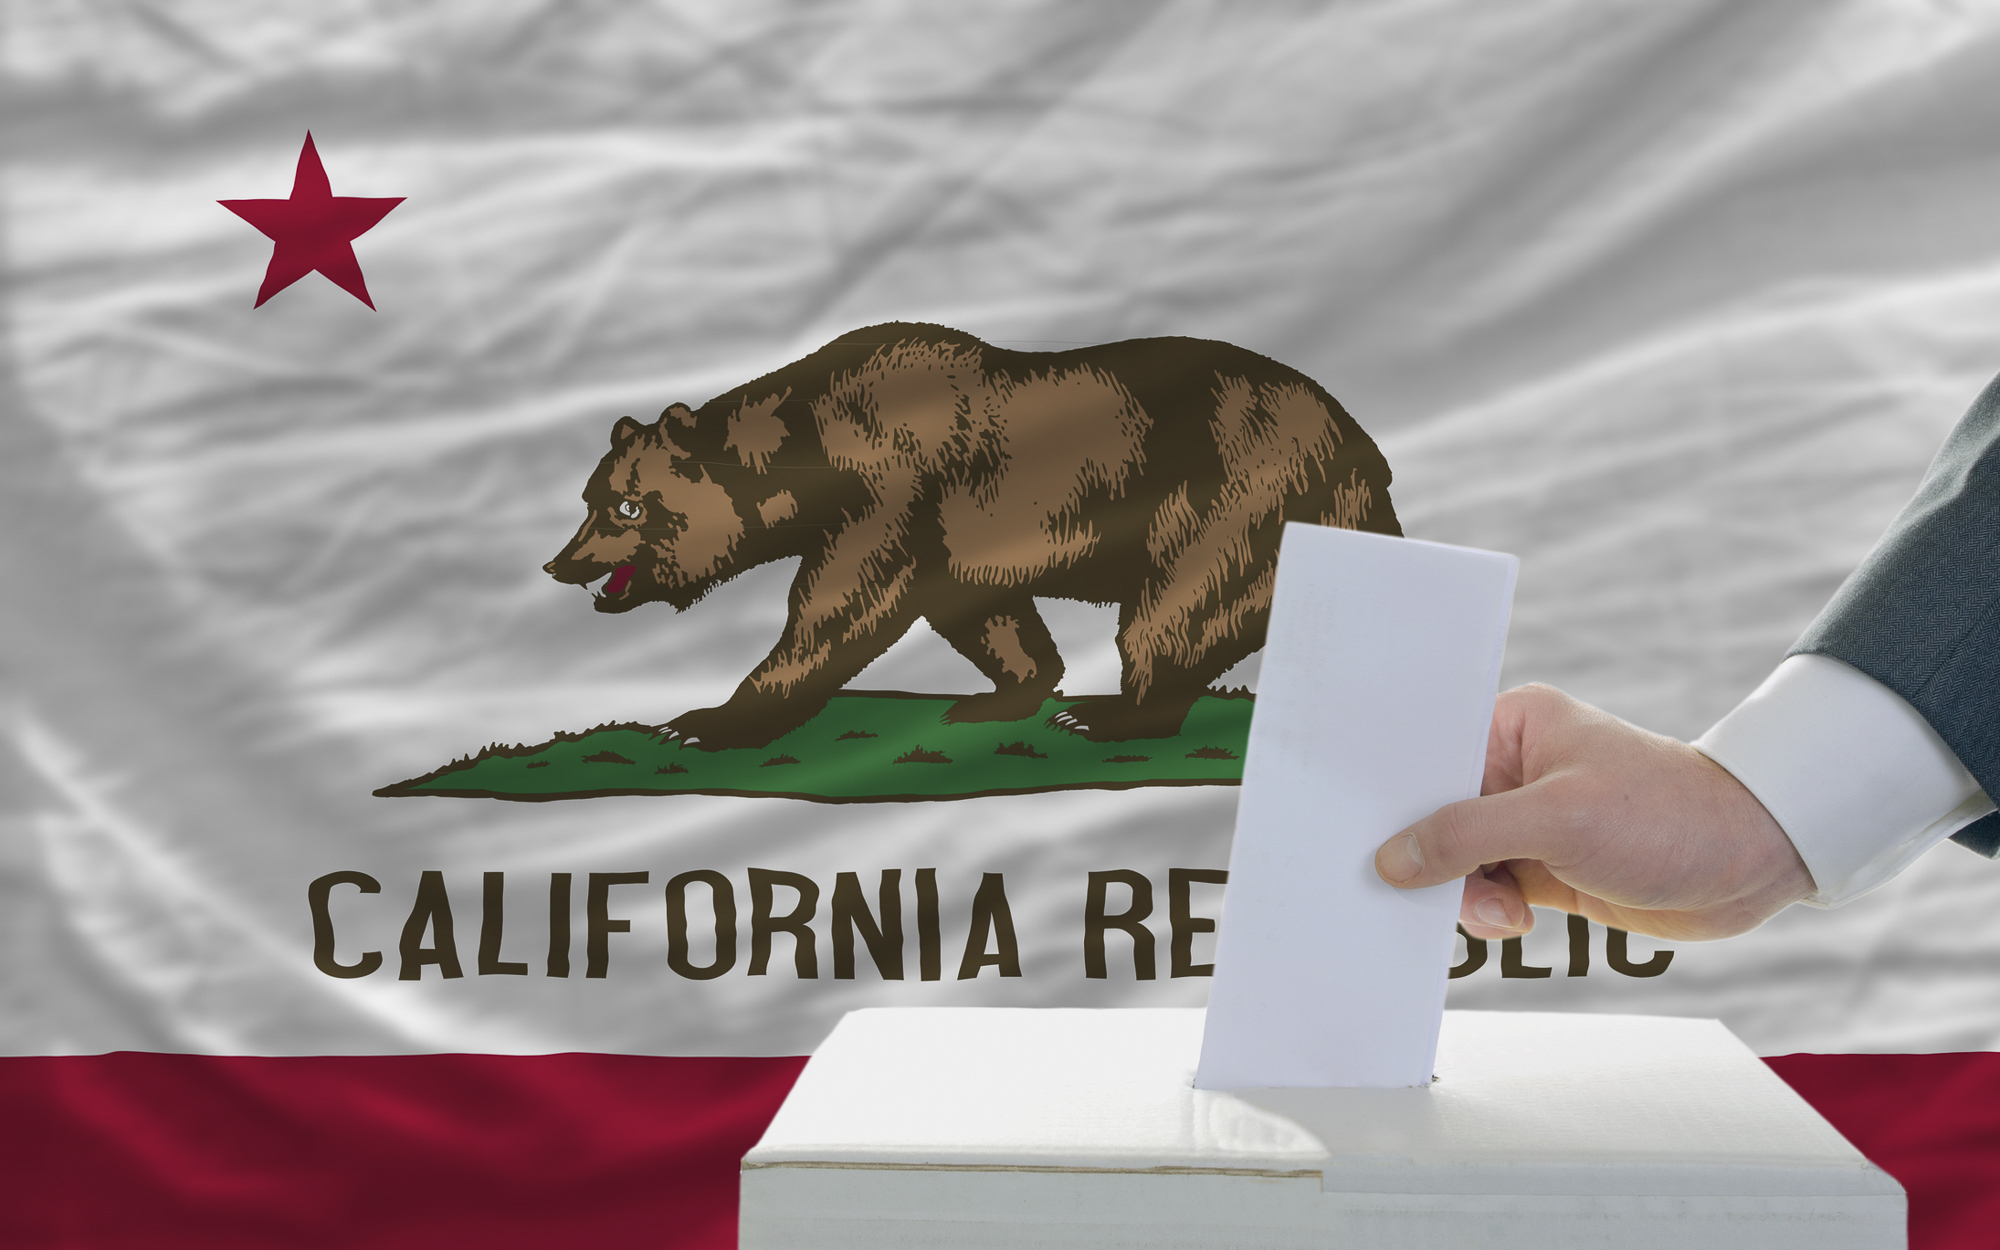 California election results photo illustration